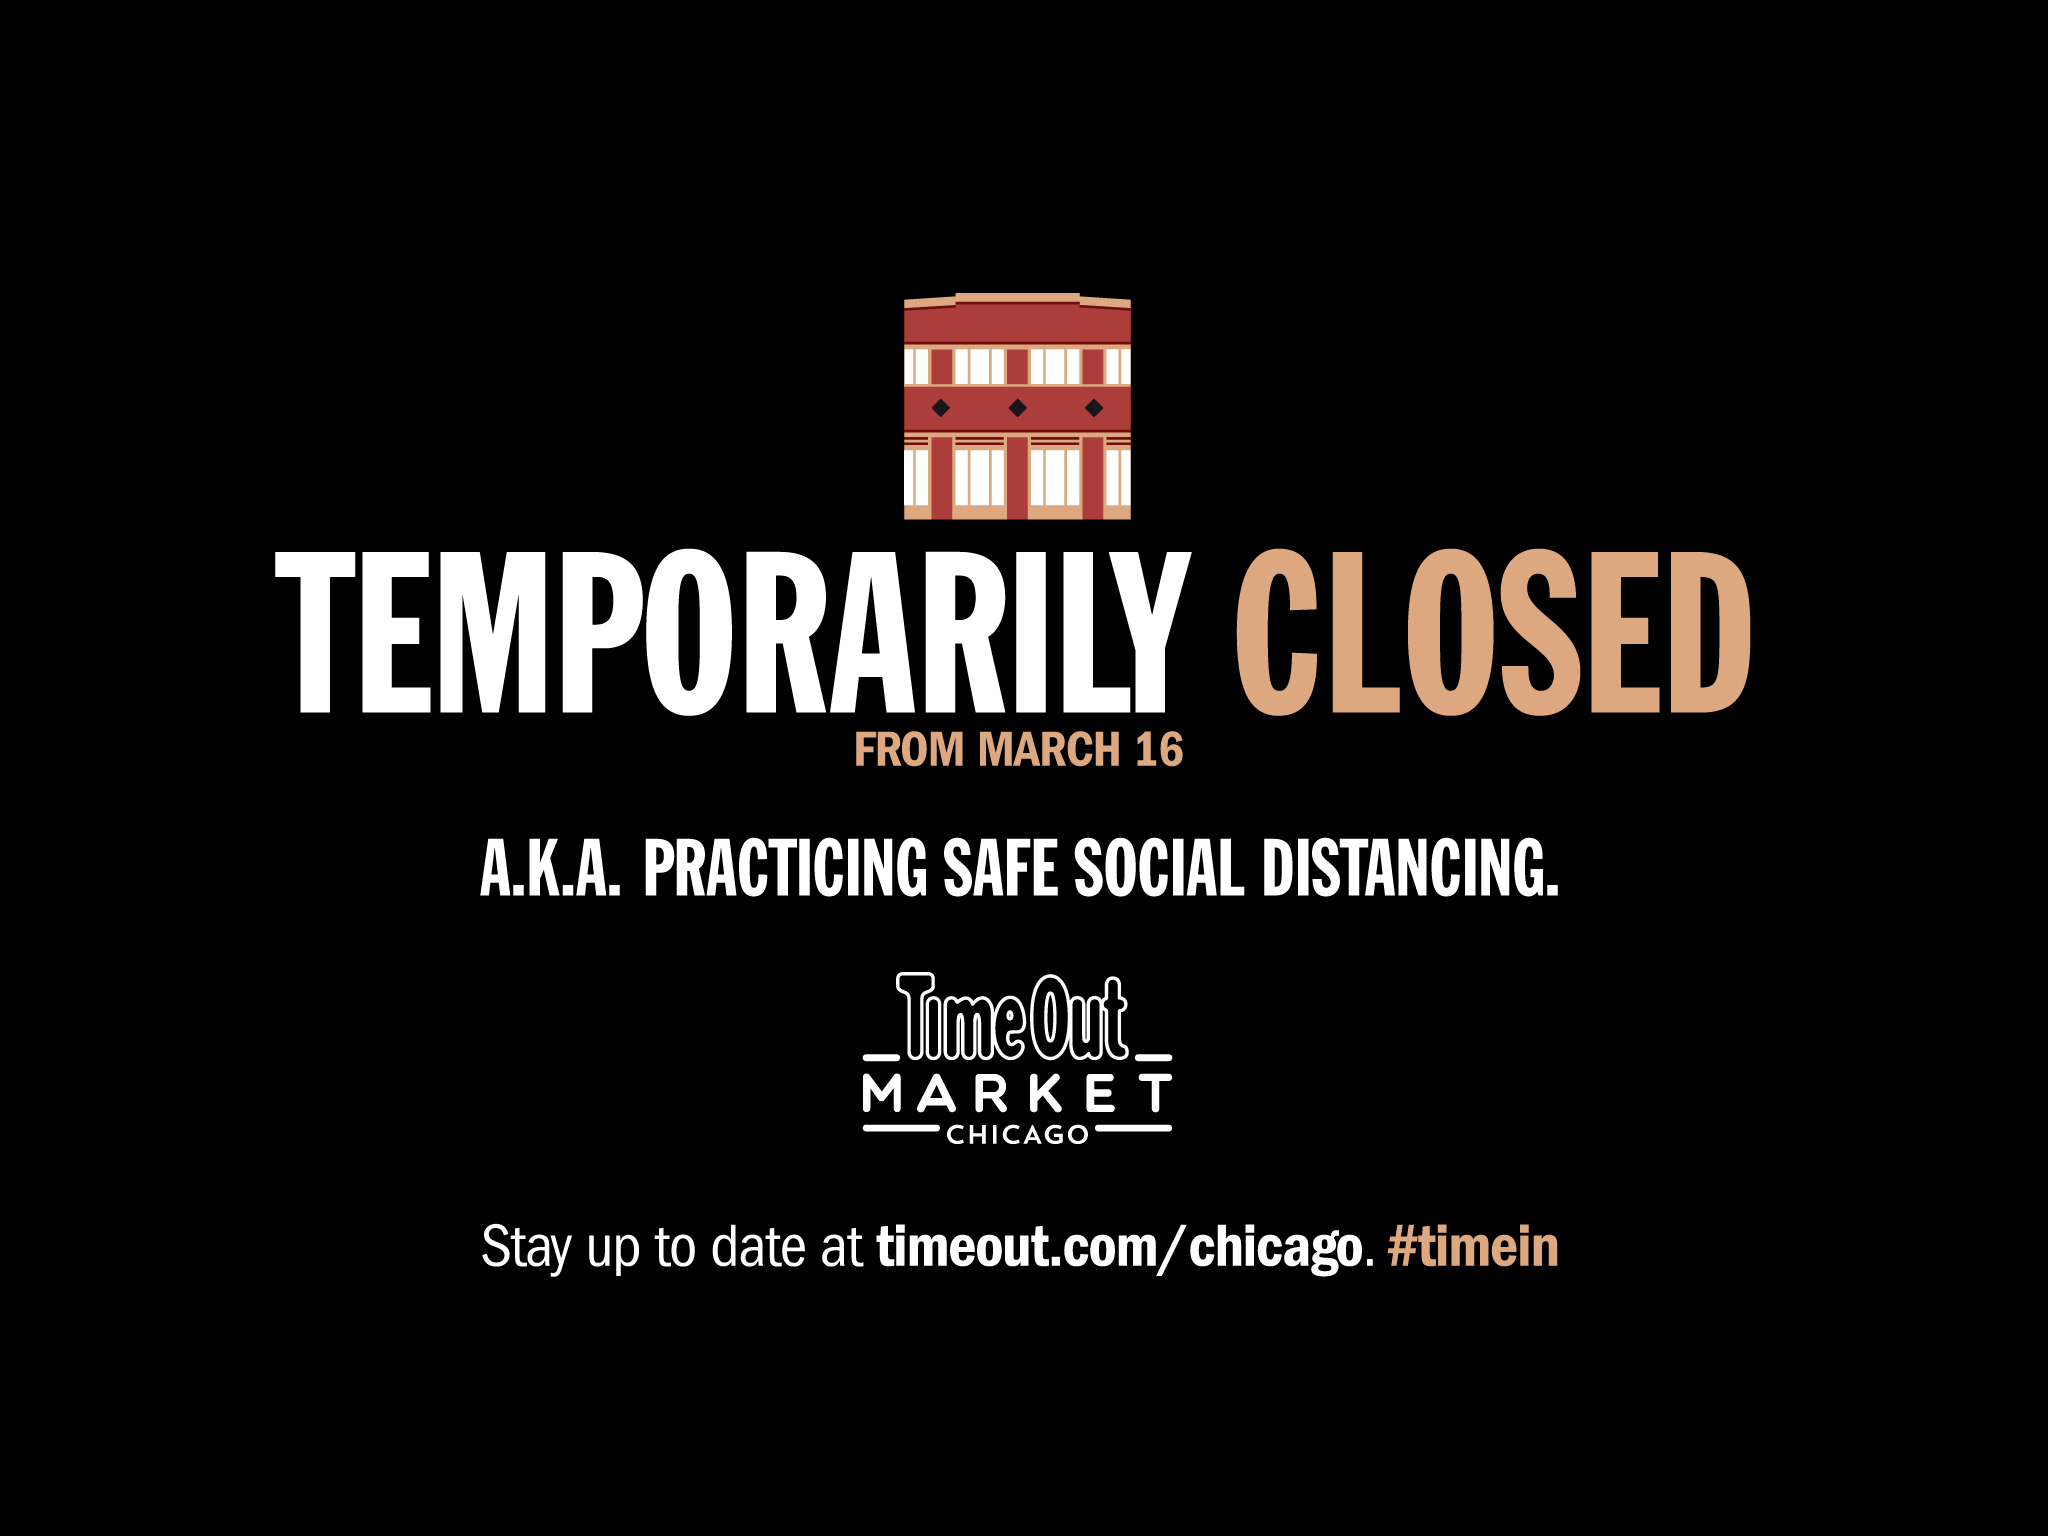 Time Out Market Chicago is temporarily closing